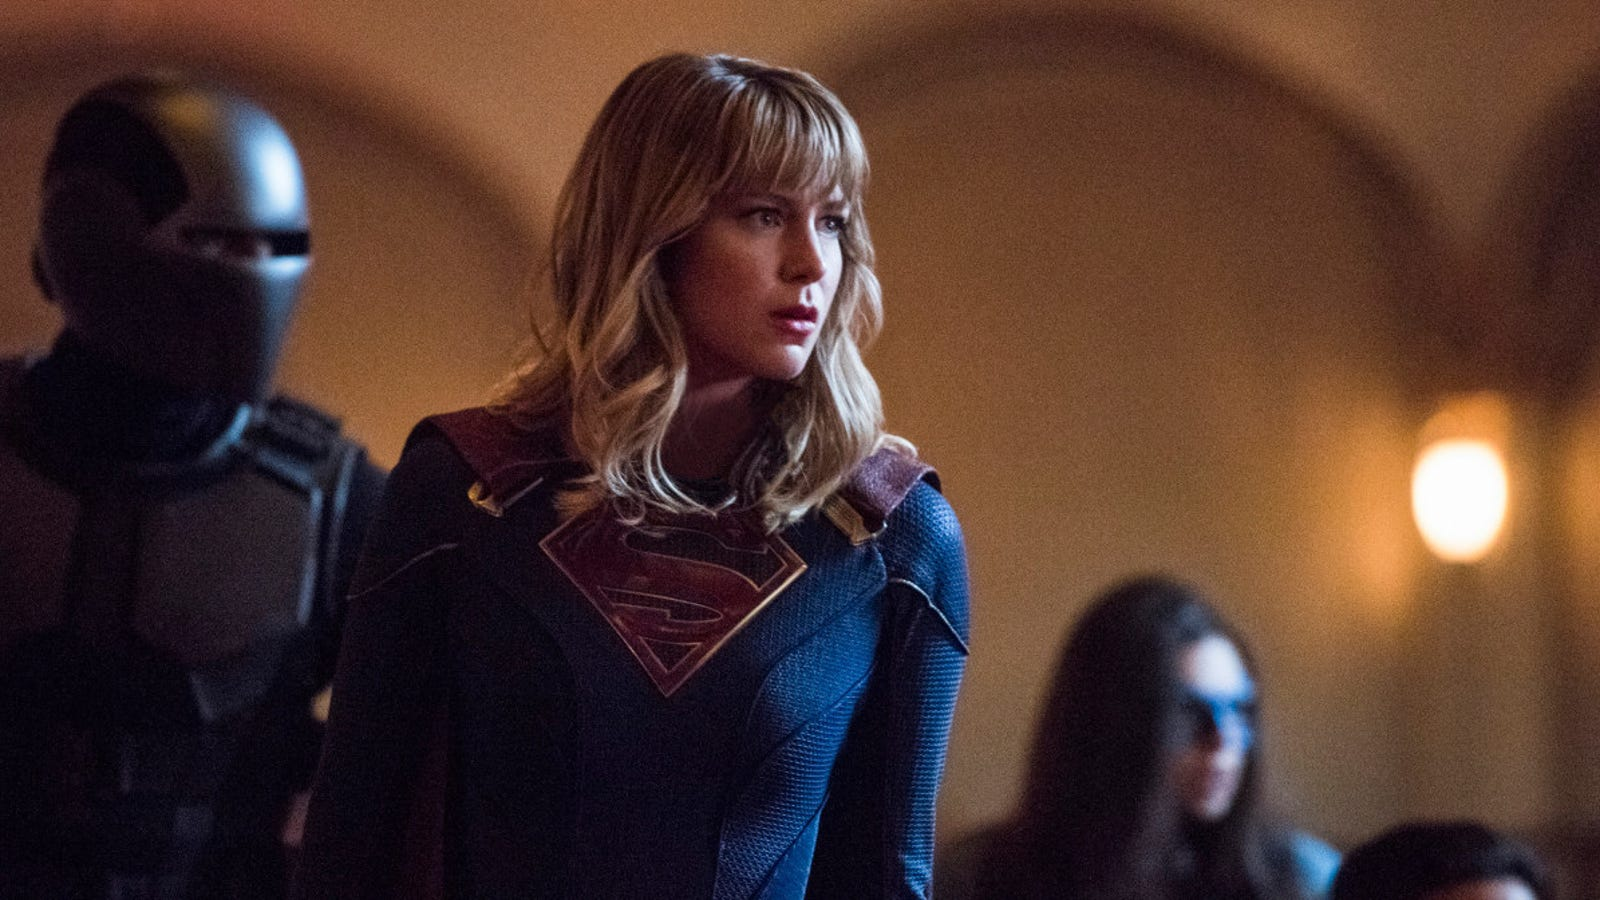 Supergirl's new nemesis is a click-hungry media mogul